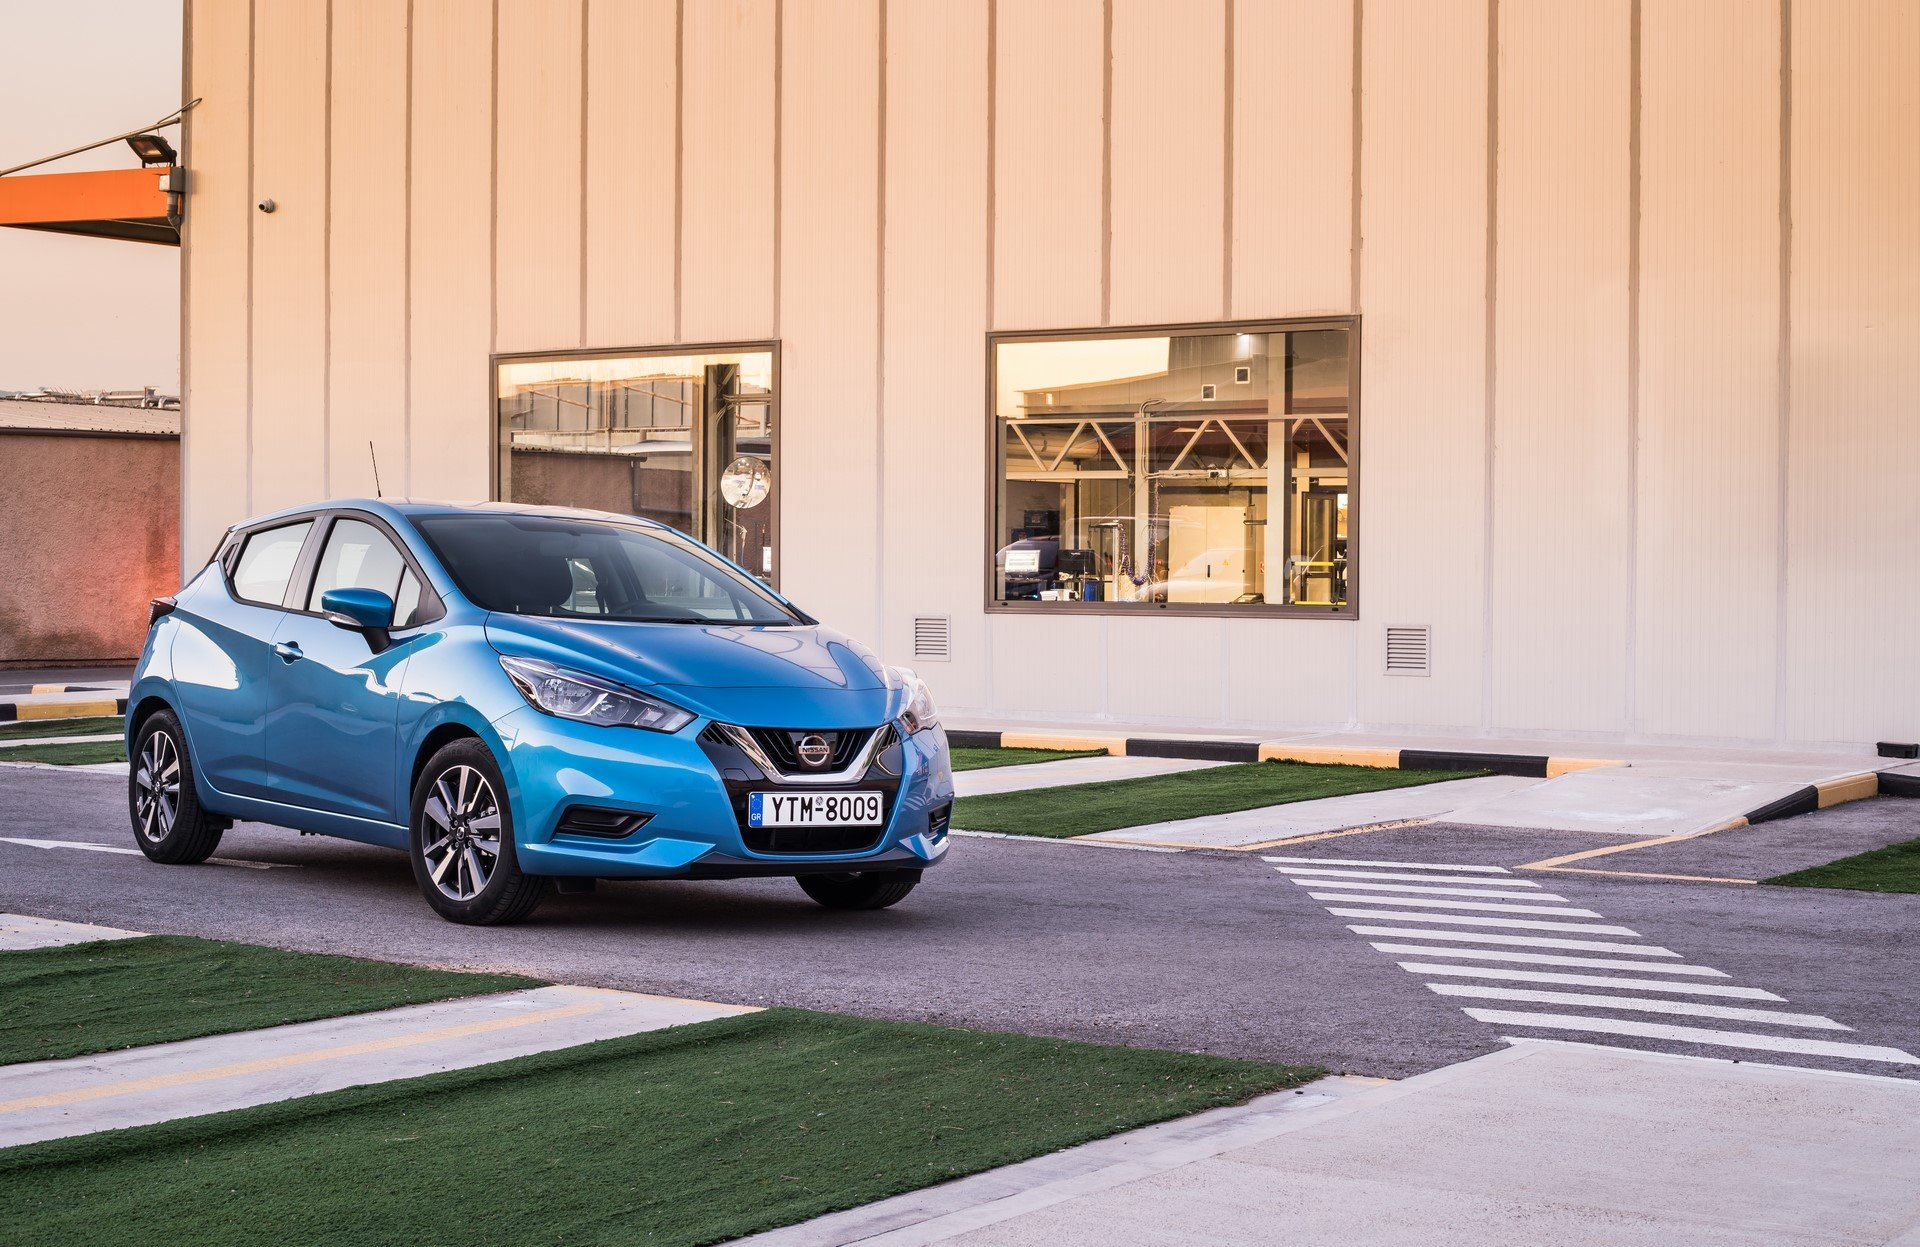 Nissan Micra 2019 Greek (7)